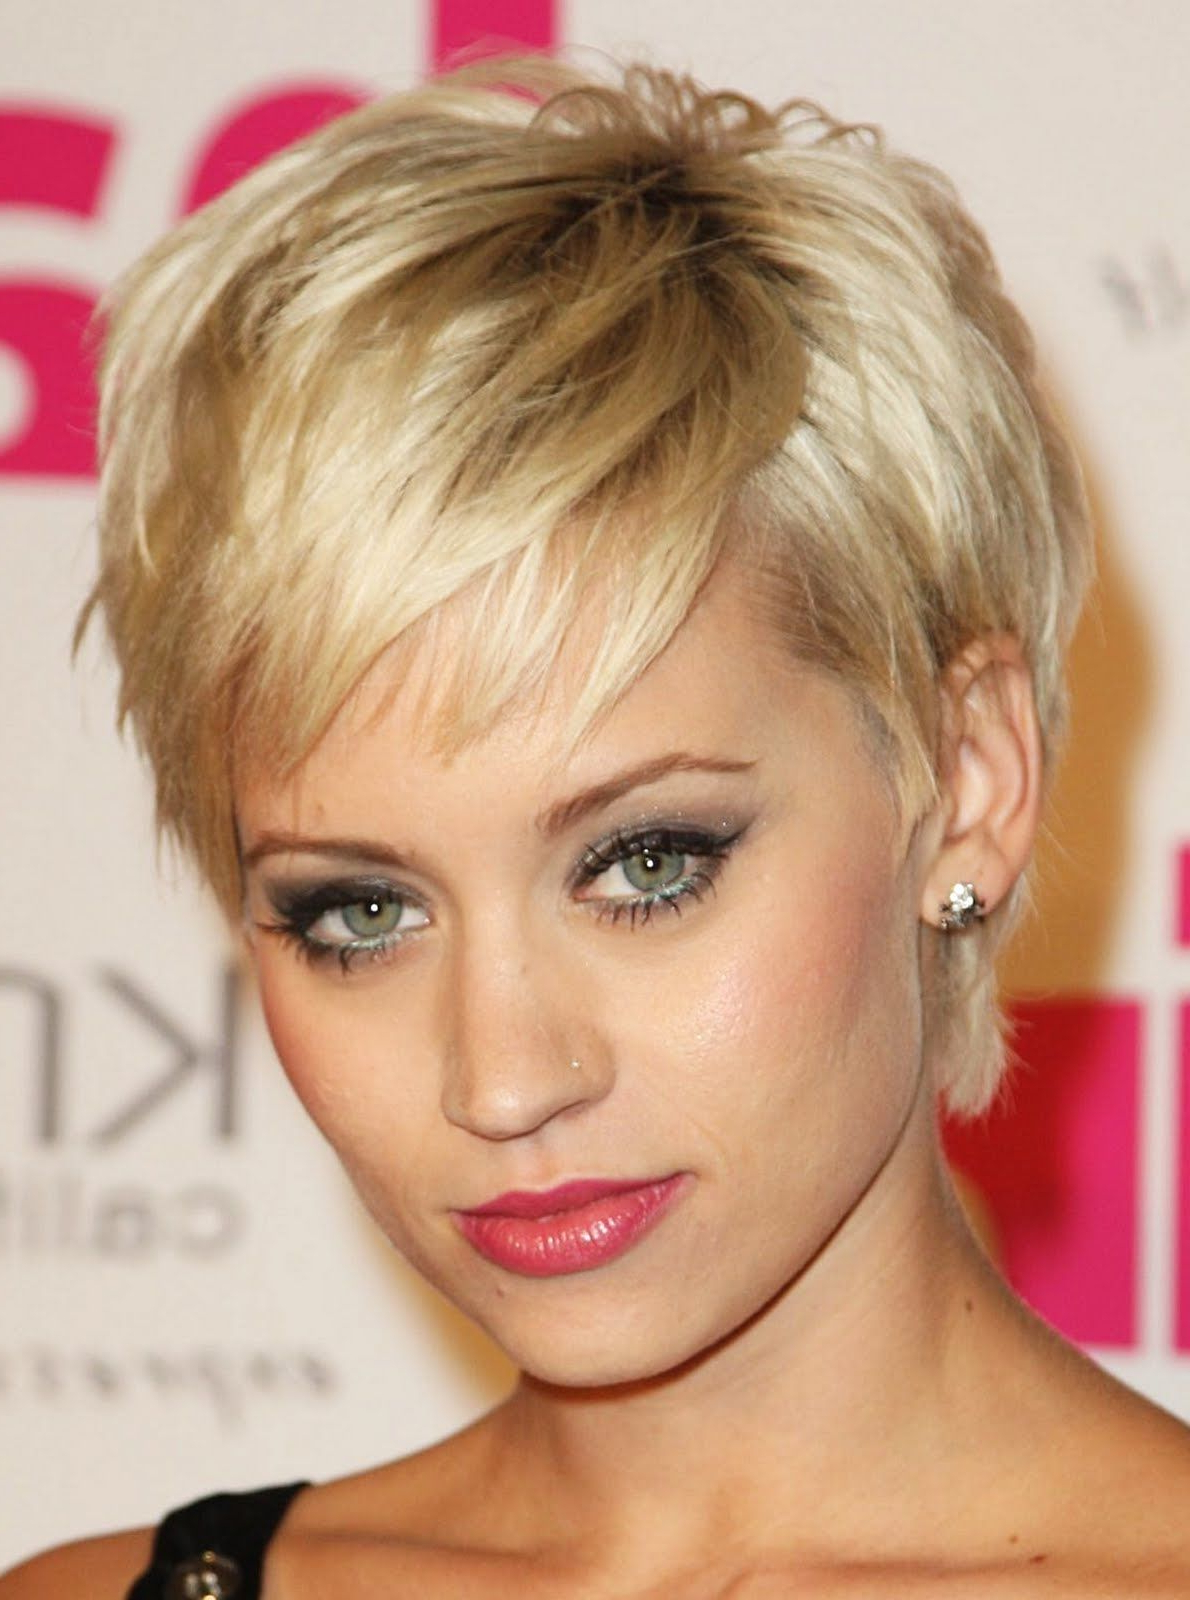 Short Hairstyles For Oval Faces (Gallery 12 of 20)